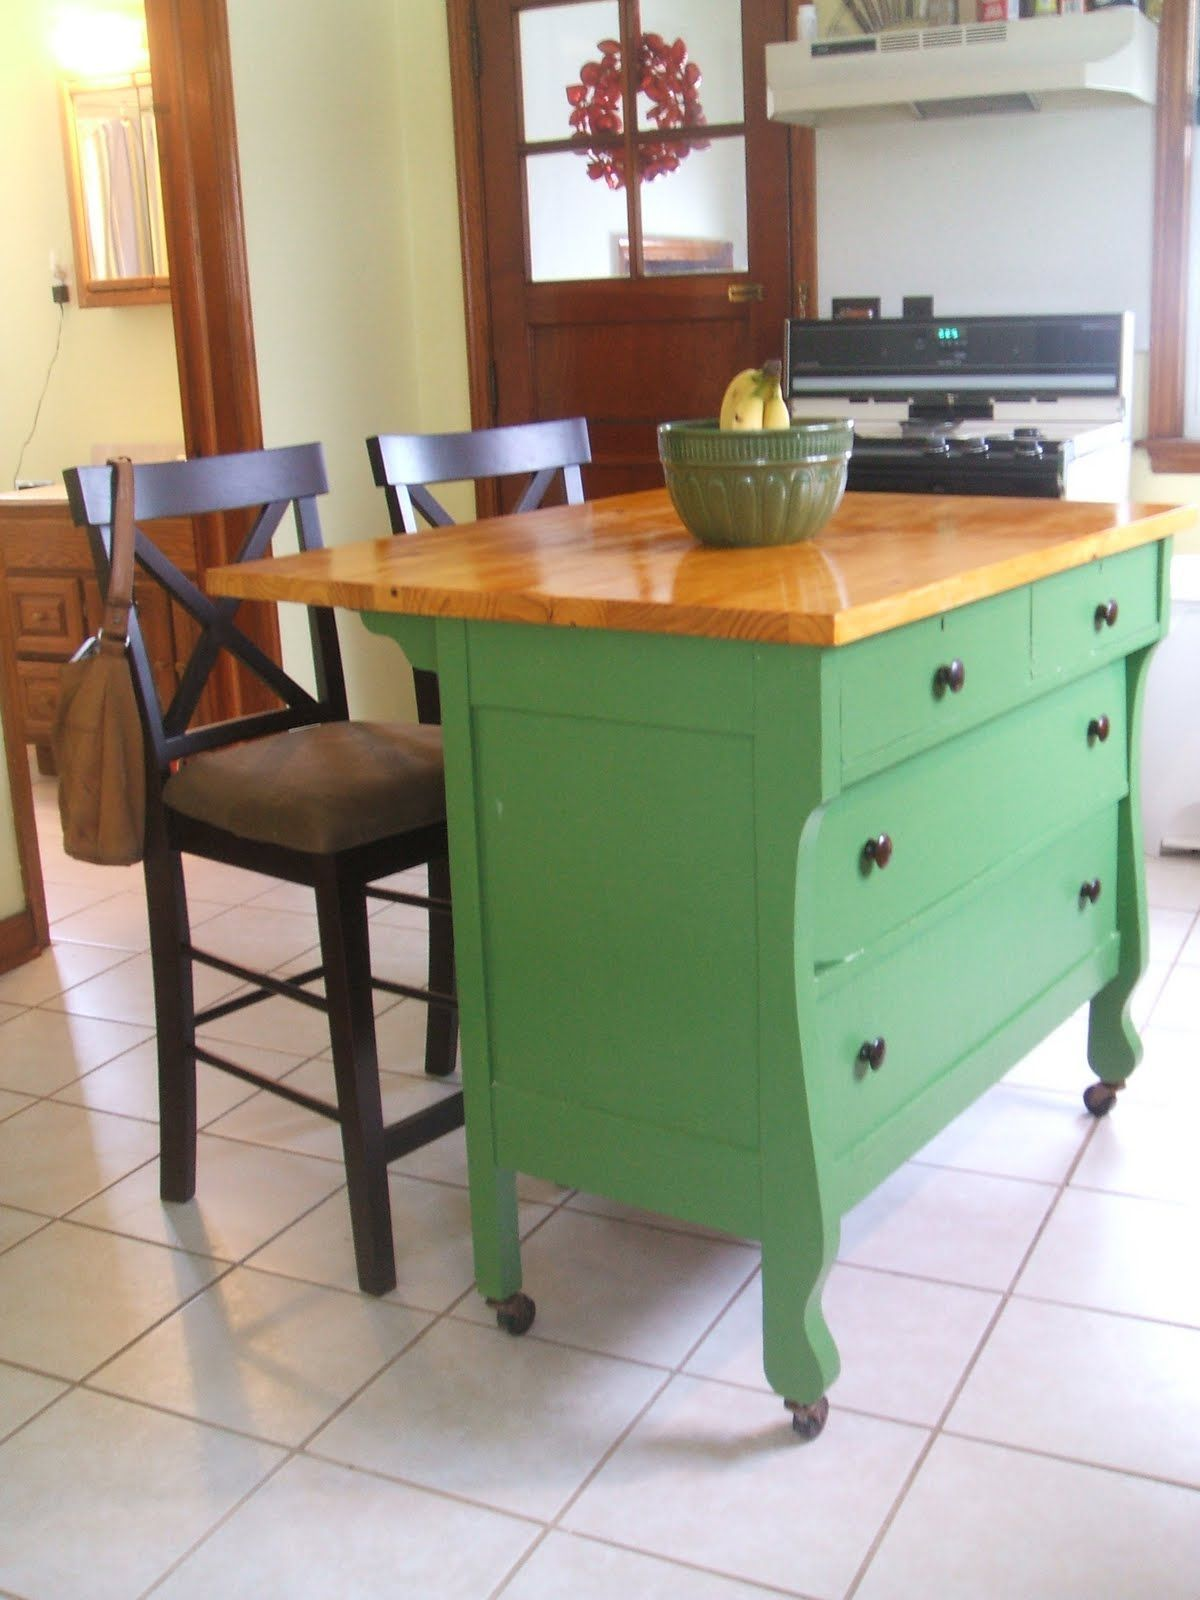 Kitchen , Small And Portable Kitchen Island Ideas : Diy Cute And Green Kitchen  Island Idea Made Of Antique Dresser For Small Space (Diy Furniture Small ...